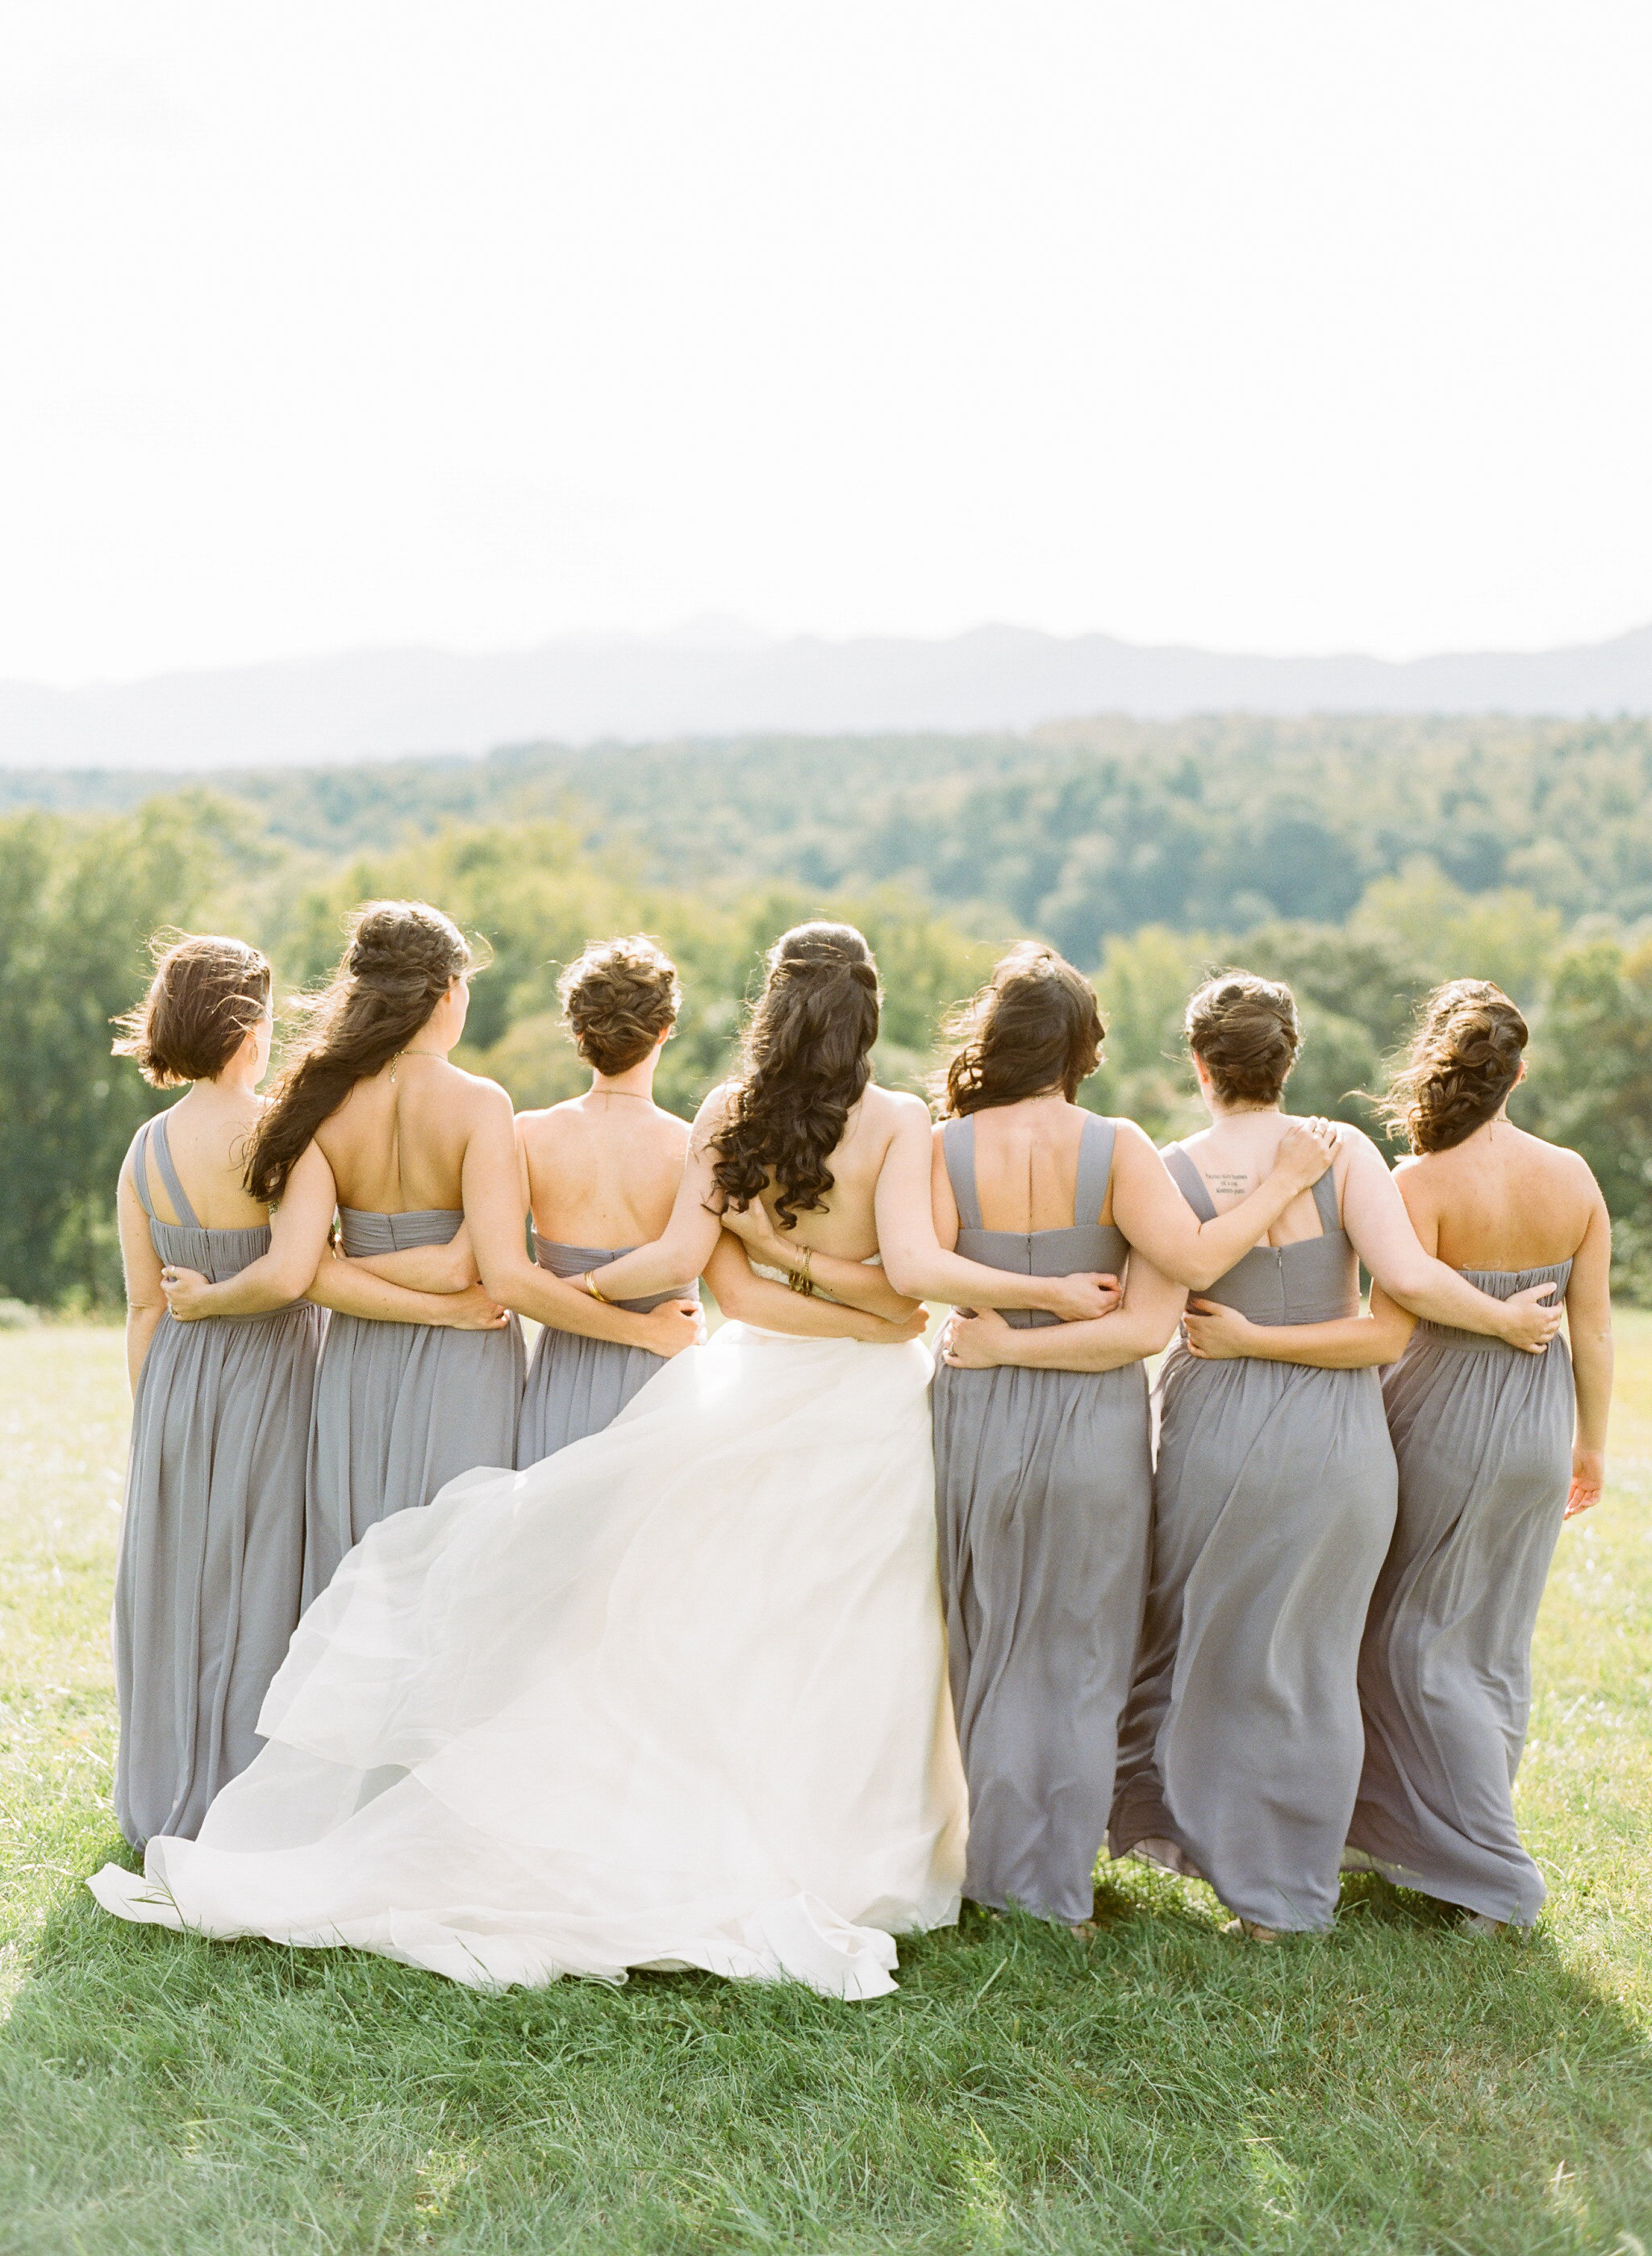 melisa-jackson-asheville-mountain-wedding-11.jpg